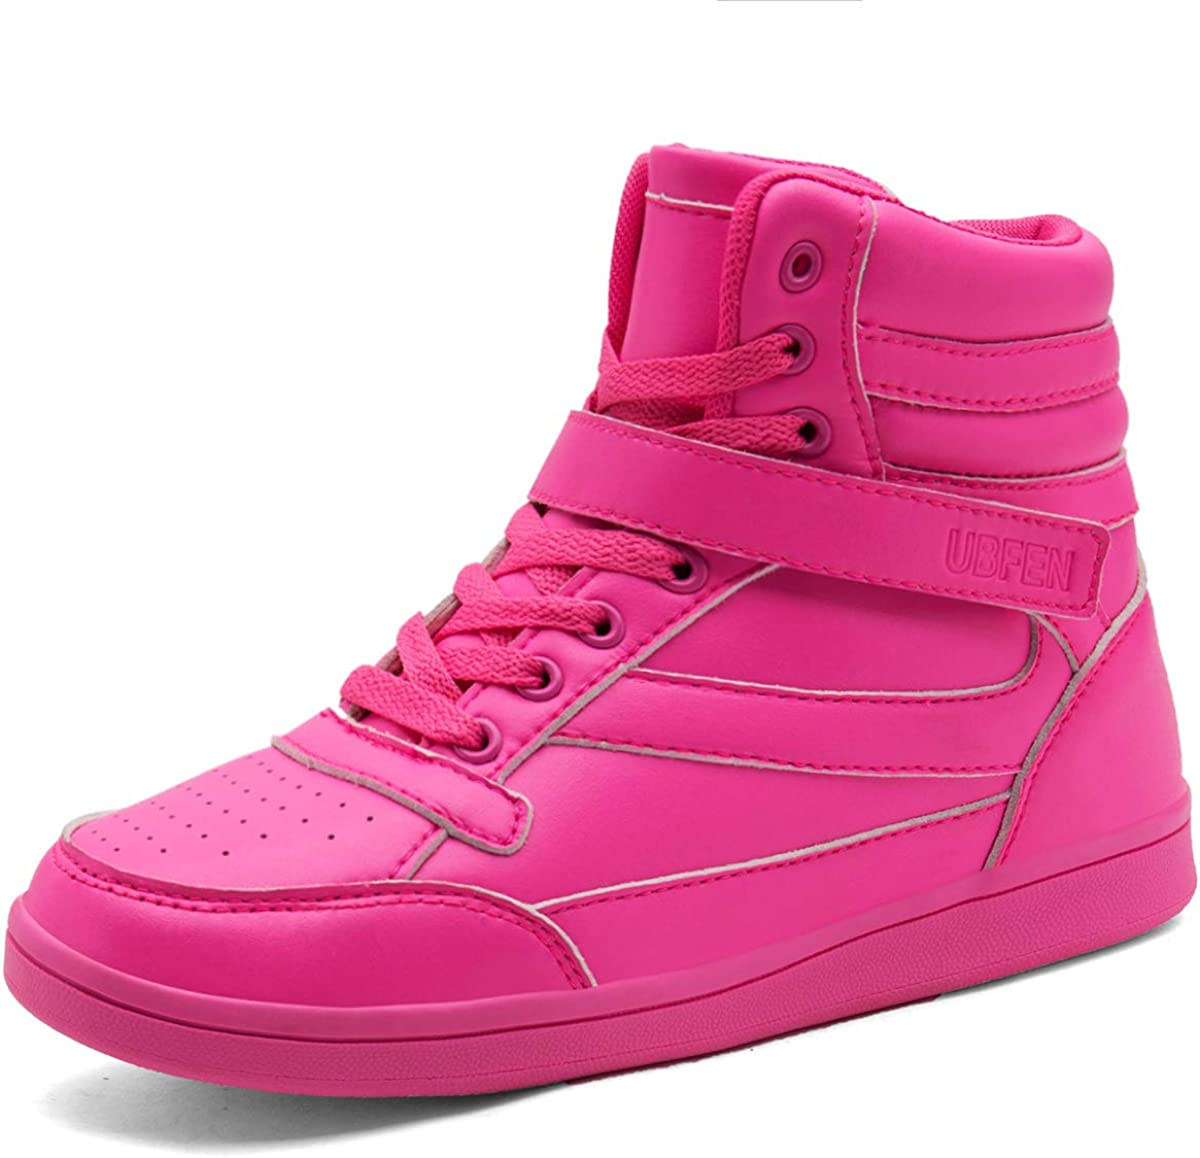 Retro Sneakers, Vintage Tennis Shoes UBFEN Womens Shoes Hidden Wedges 5.5cm Fashion Sneakers Ankle Boots Bootie Platform Heel High Top Casual Sports $36.99 AT vintagedancer.com